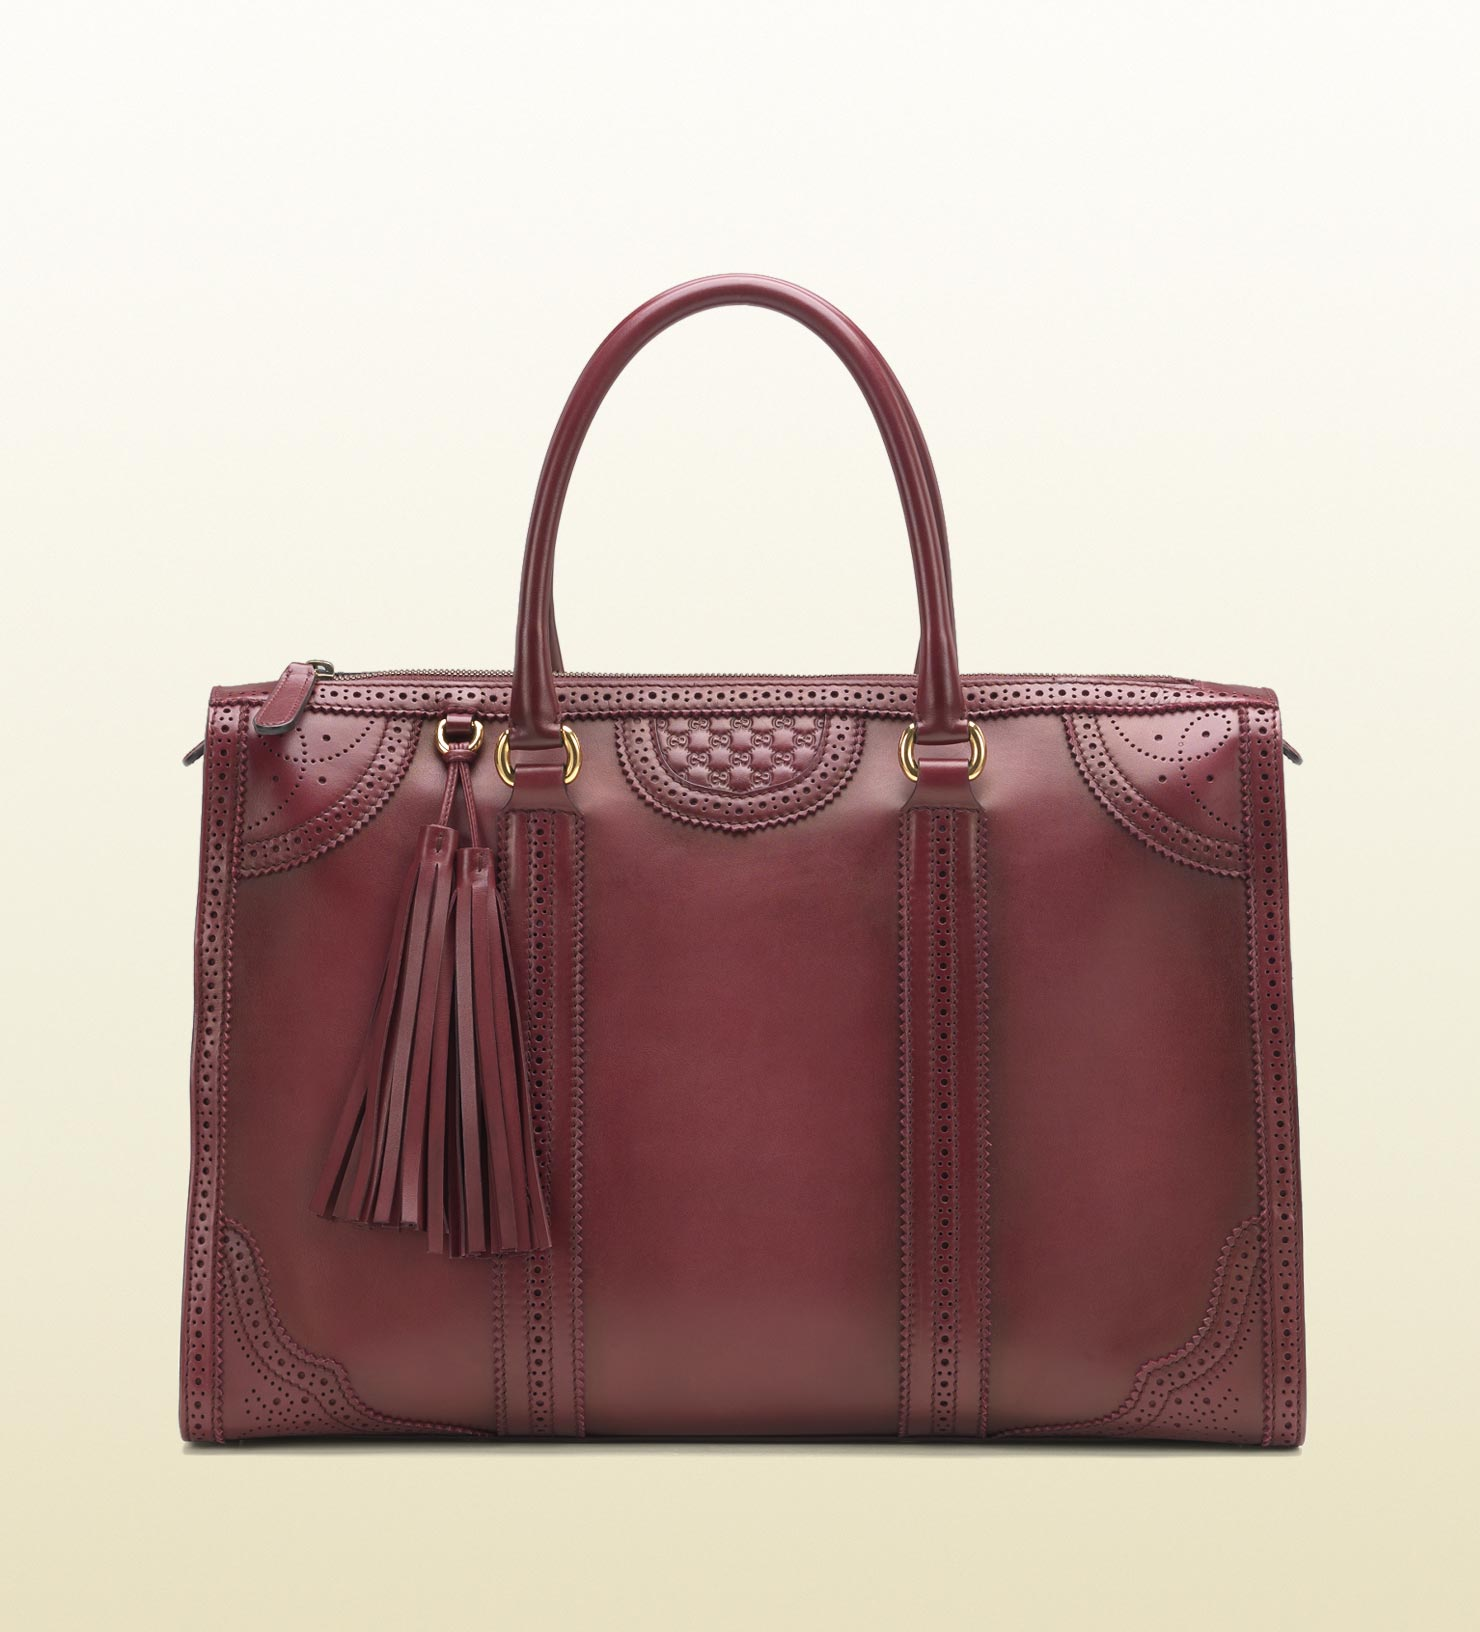 2099a9d3fefe Gucci Duilio Brogue Leather Tote in Red - Lyst